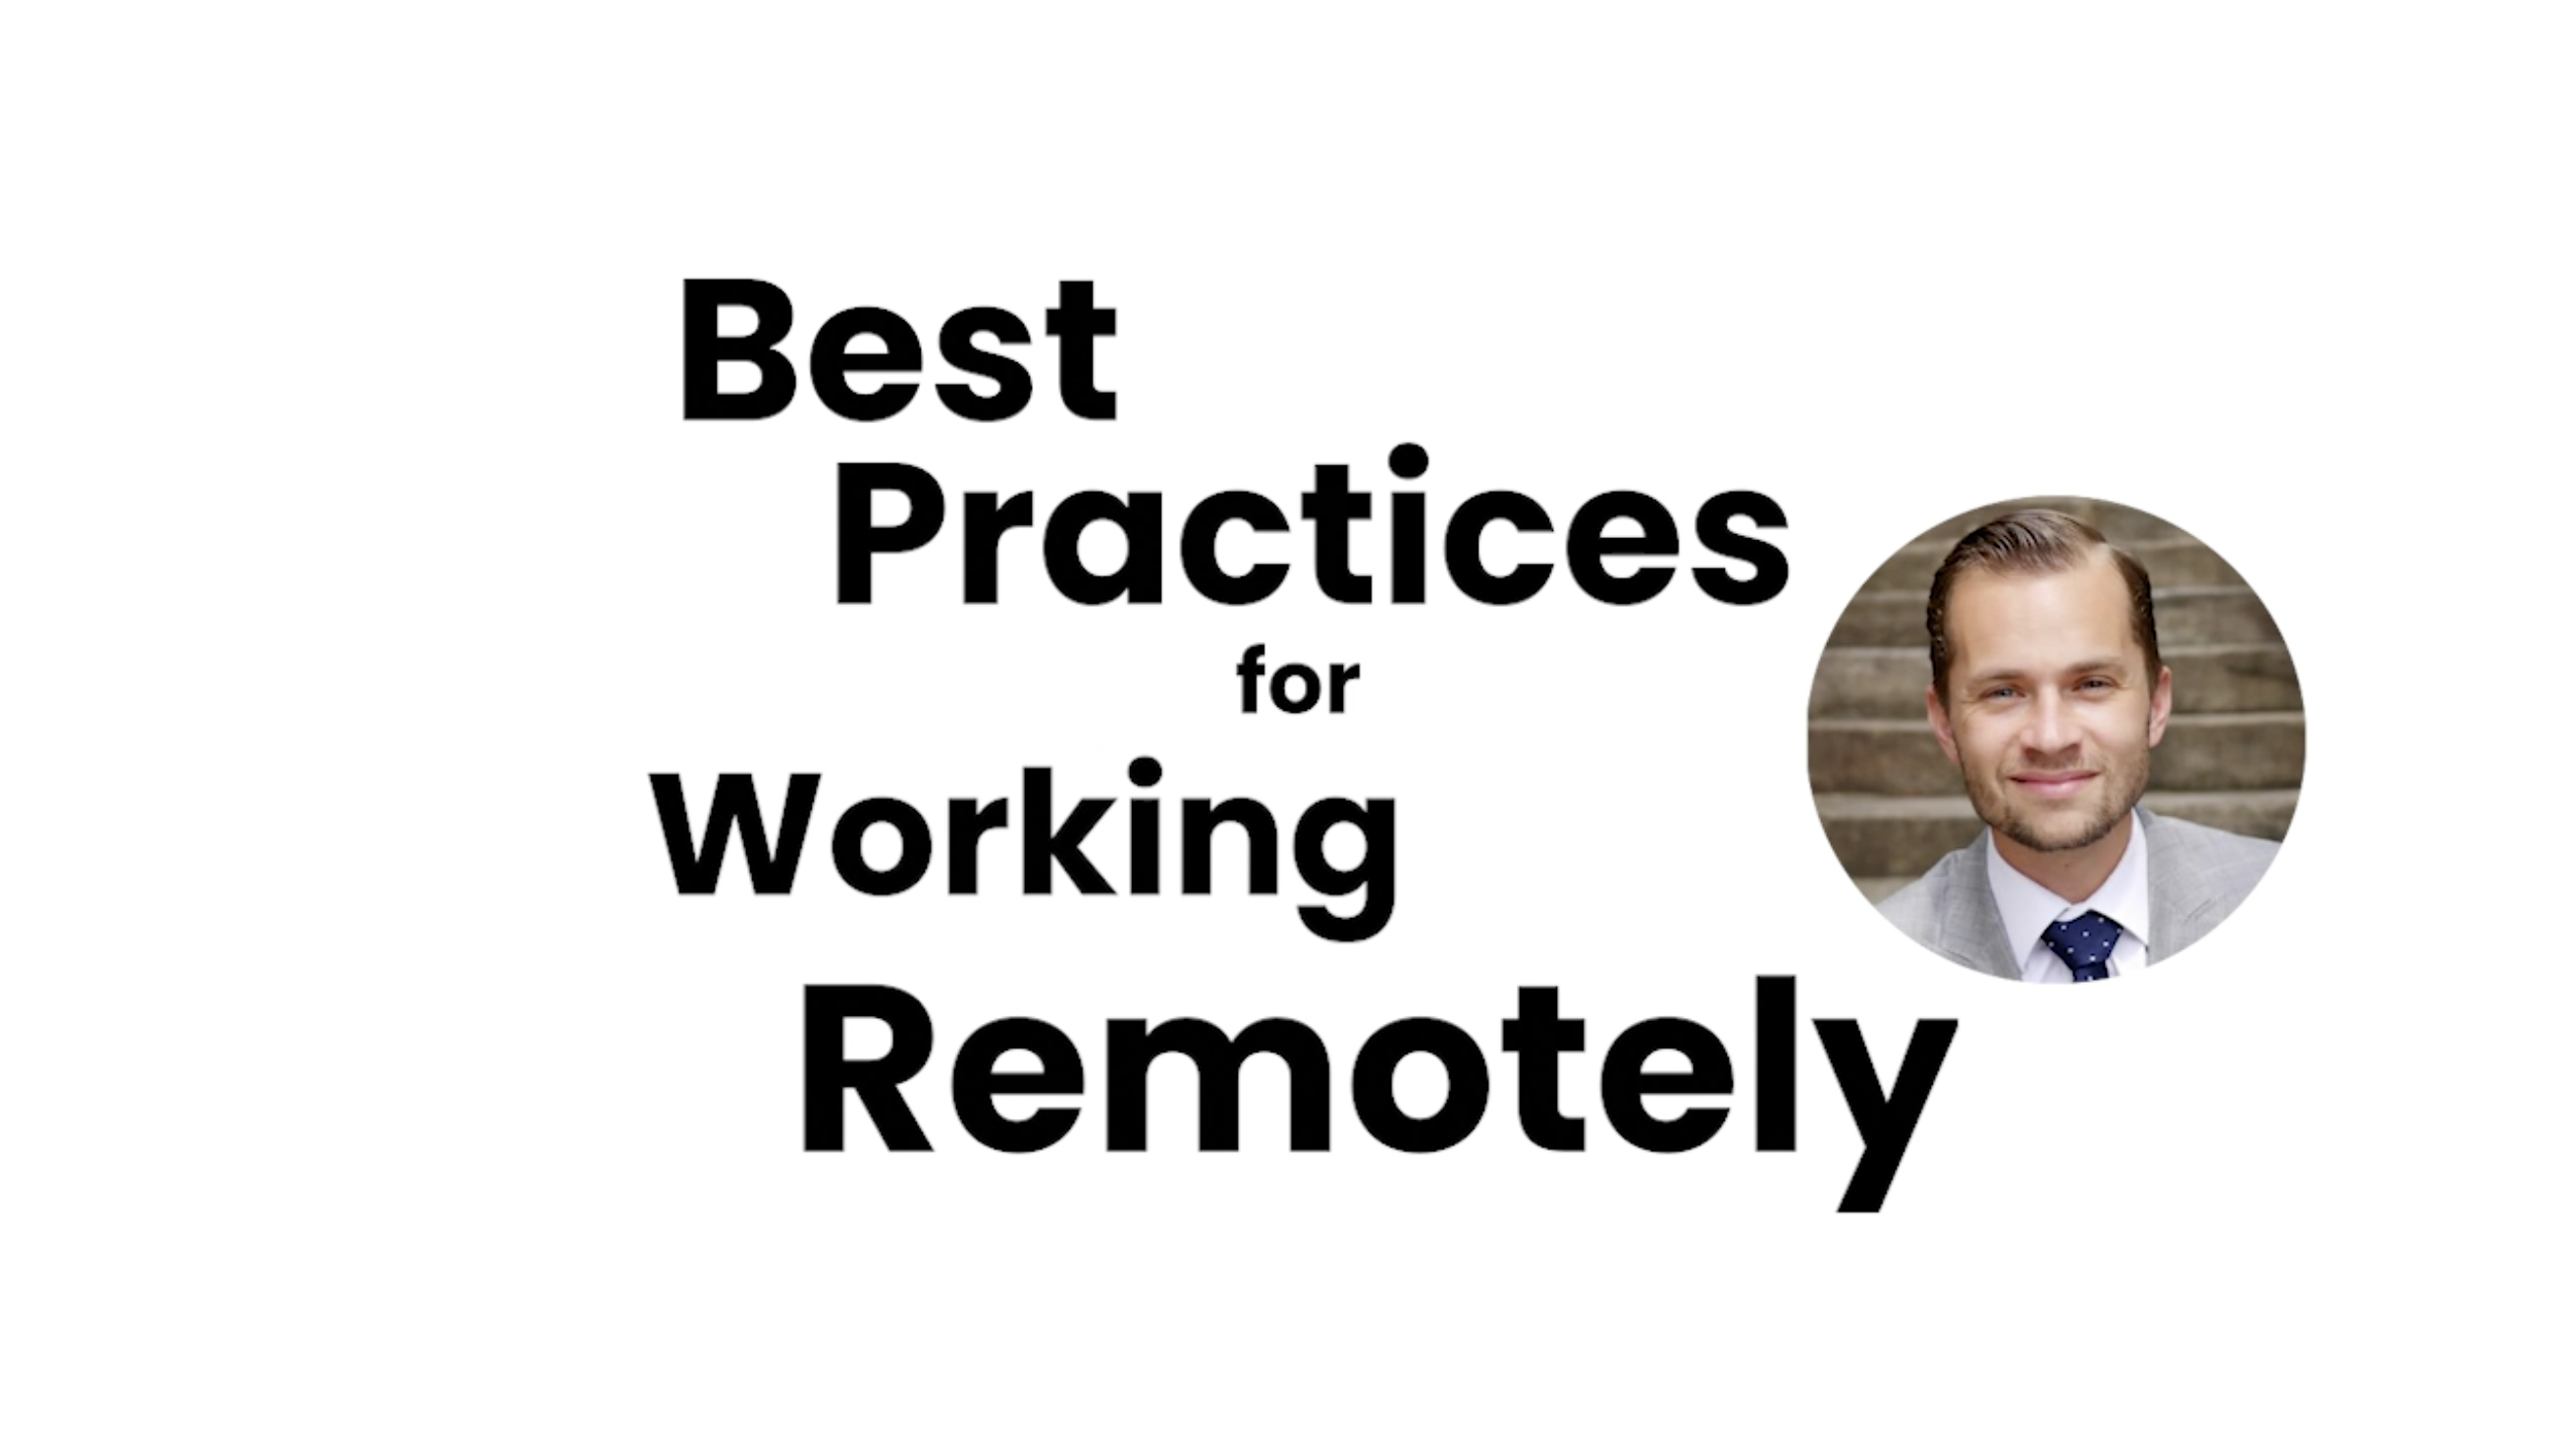 Best practises for working remotely